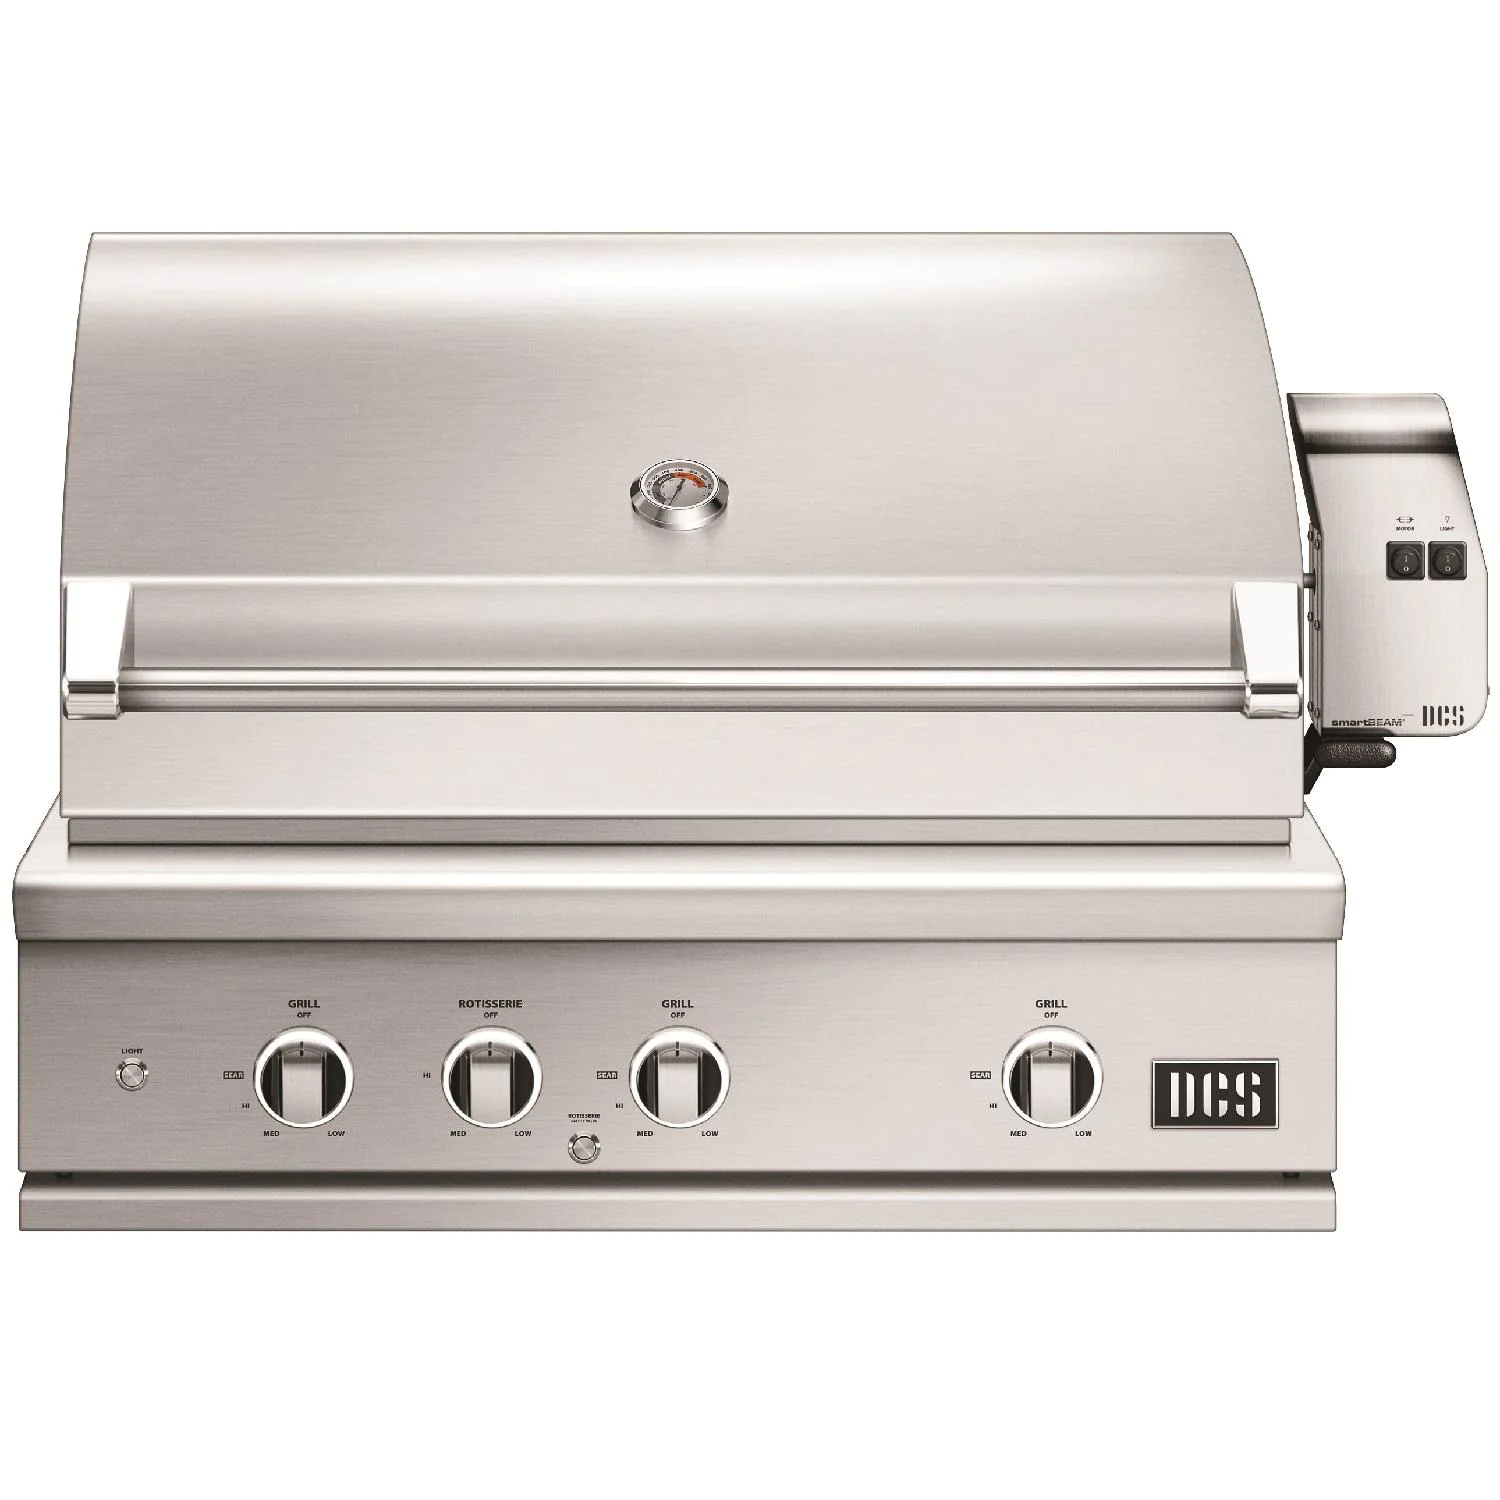 """DCS Series 9 Evolution 36"""" Built-In Propane Gas Grill With Rotisserie - be1-36rc-l"""